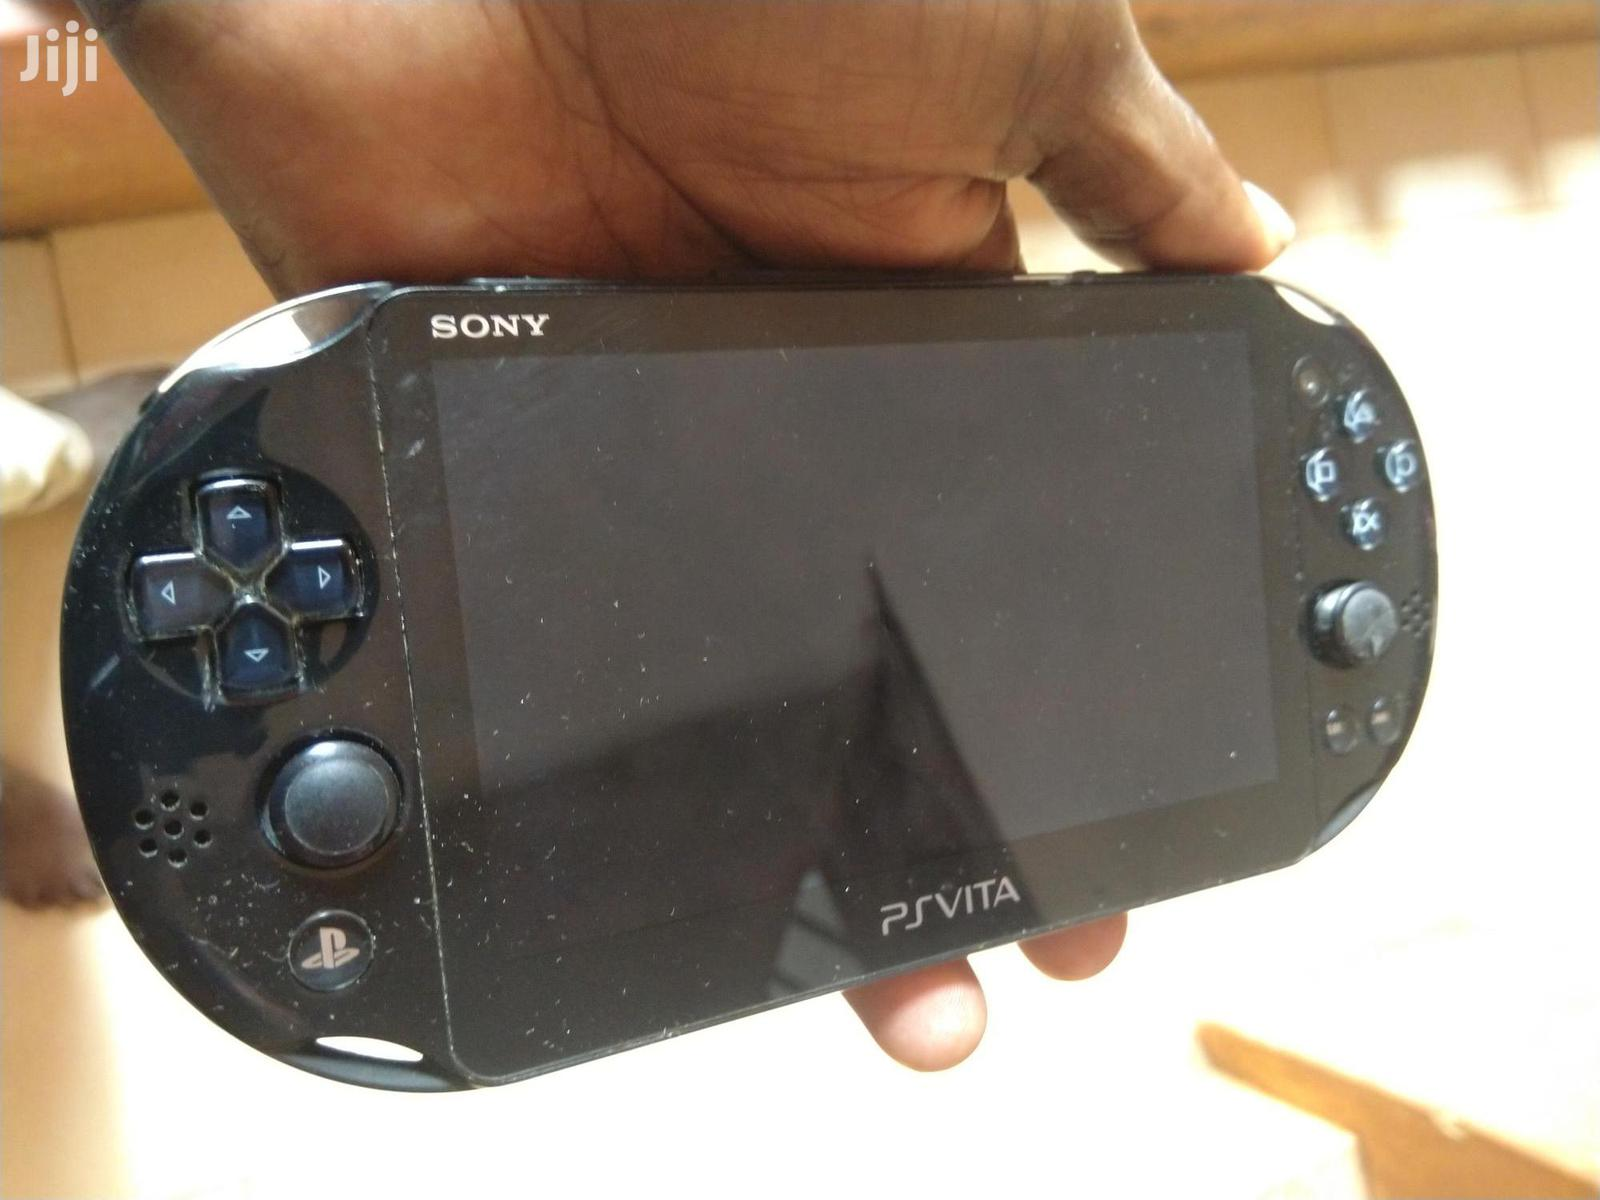 Archive: Slim PS Vita Chipped